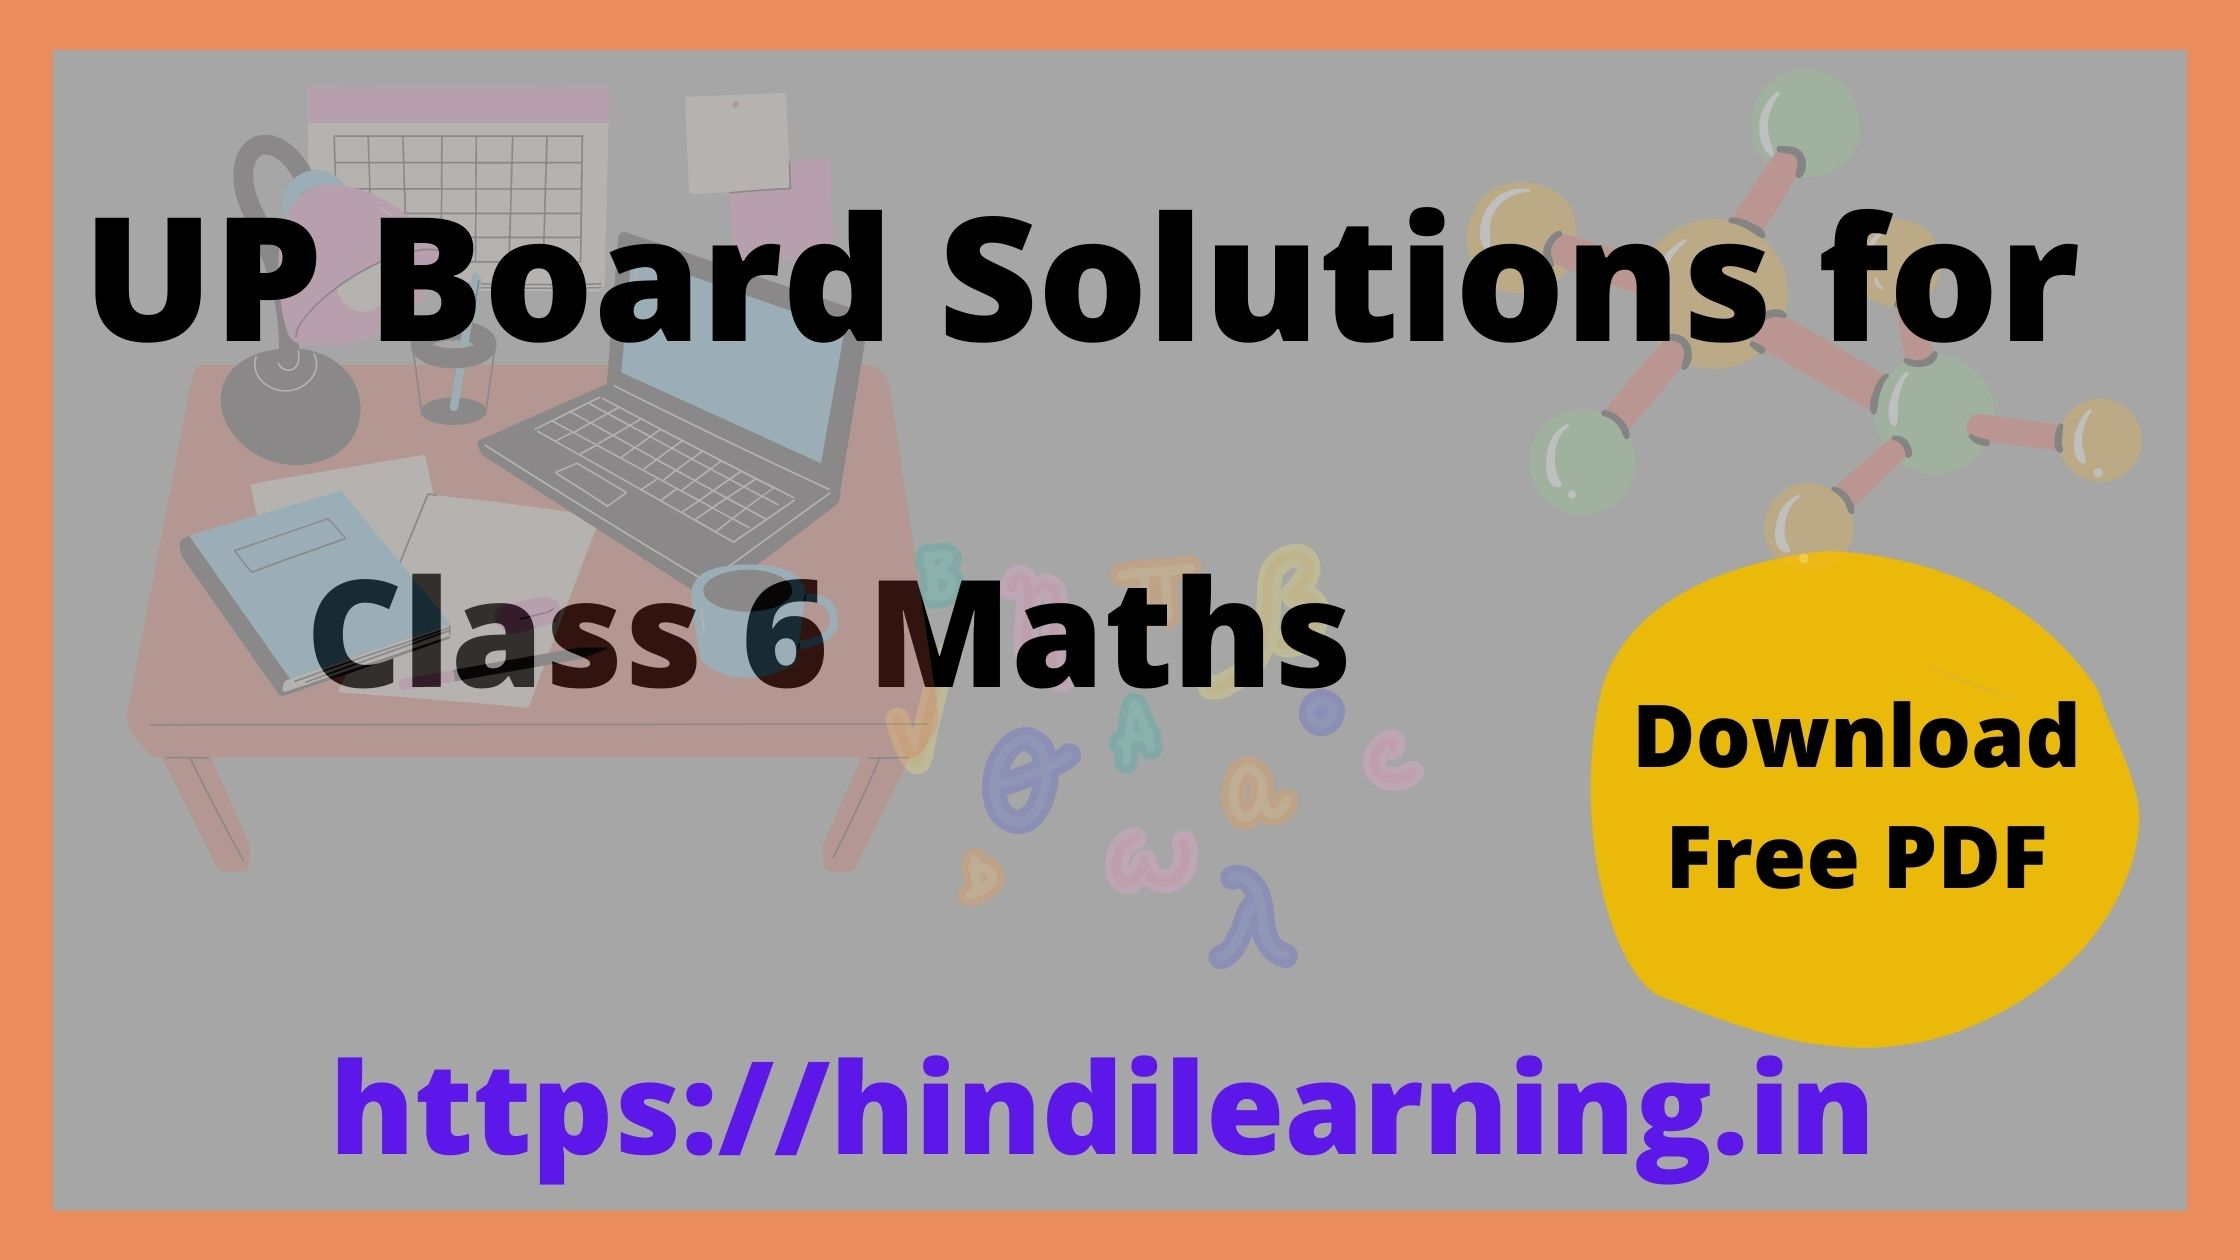 UP Board Solutions for Class 6 Maths (गणित)